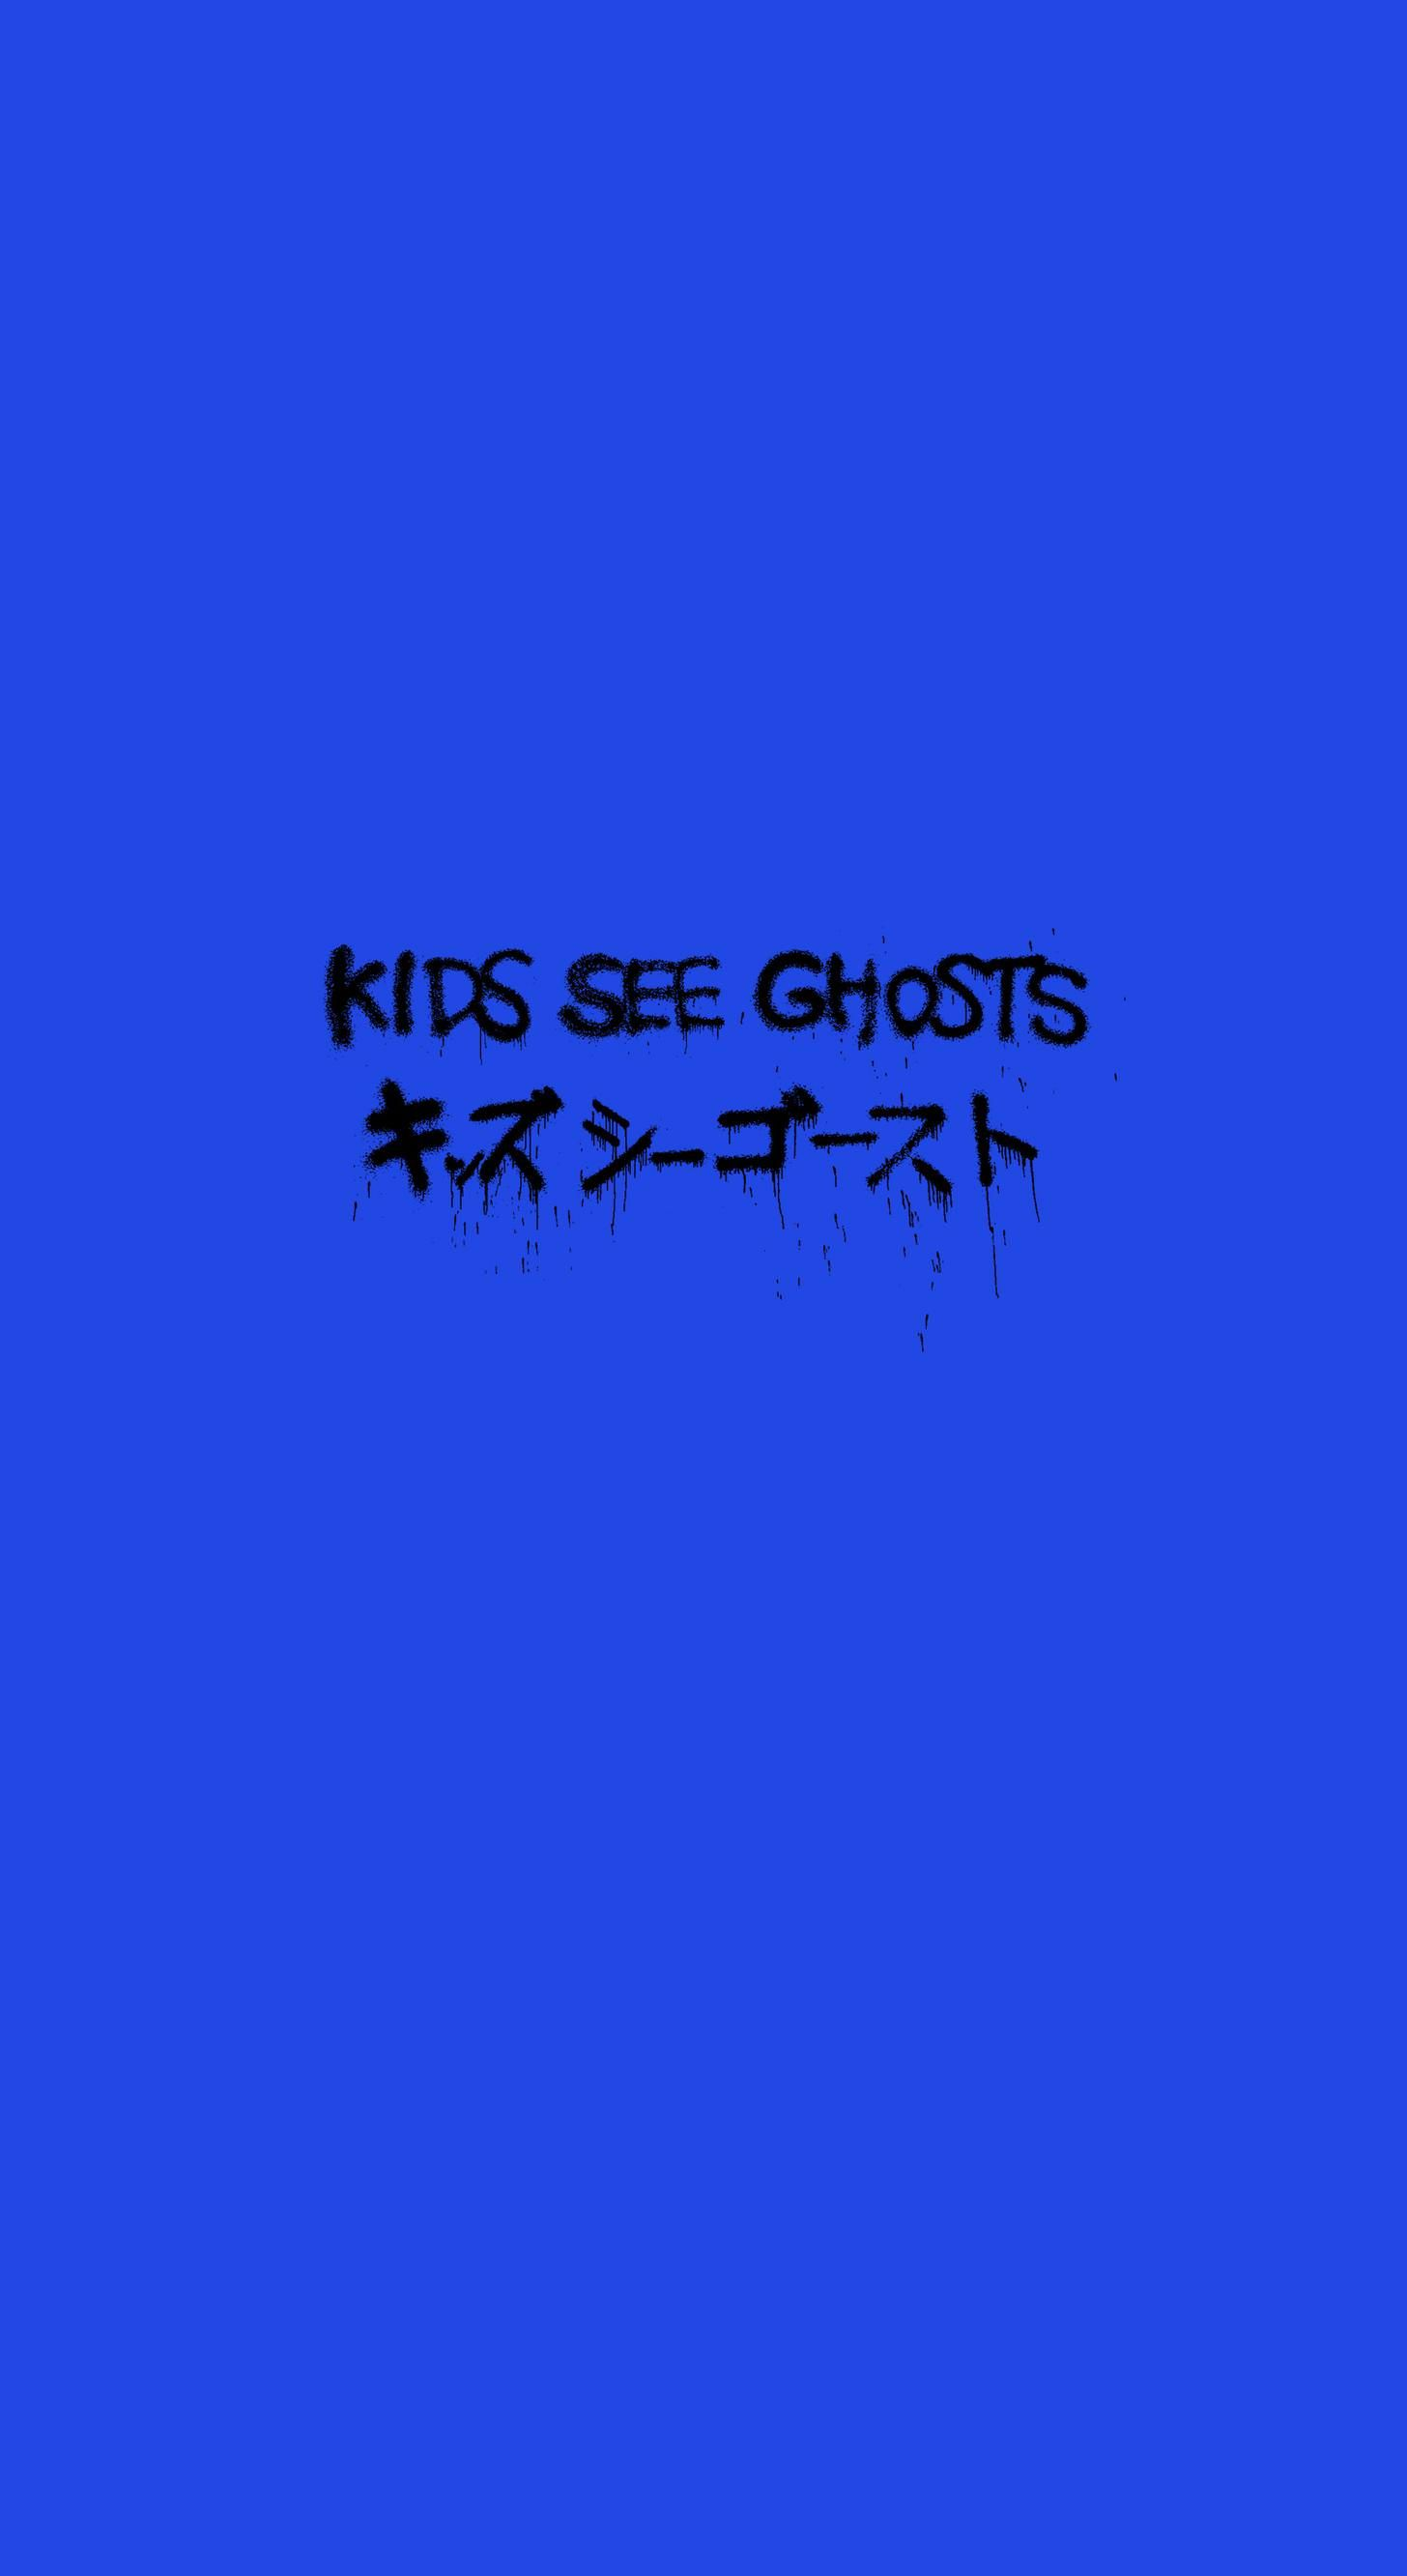 Kids See Ghosts Kanye iPhone Wallpaper